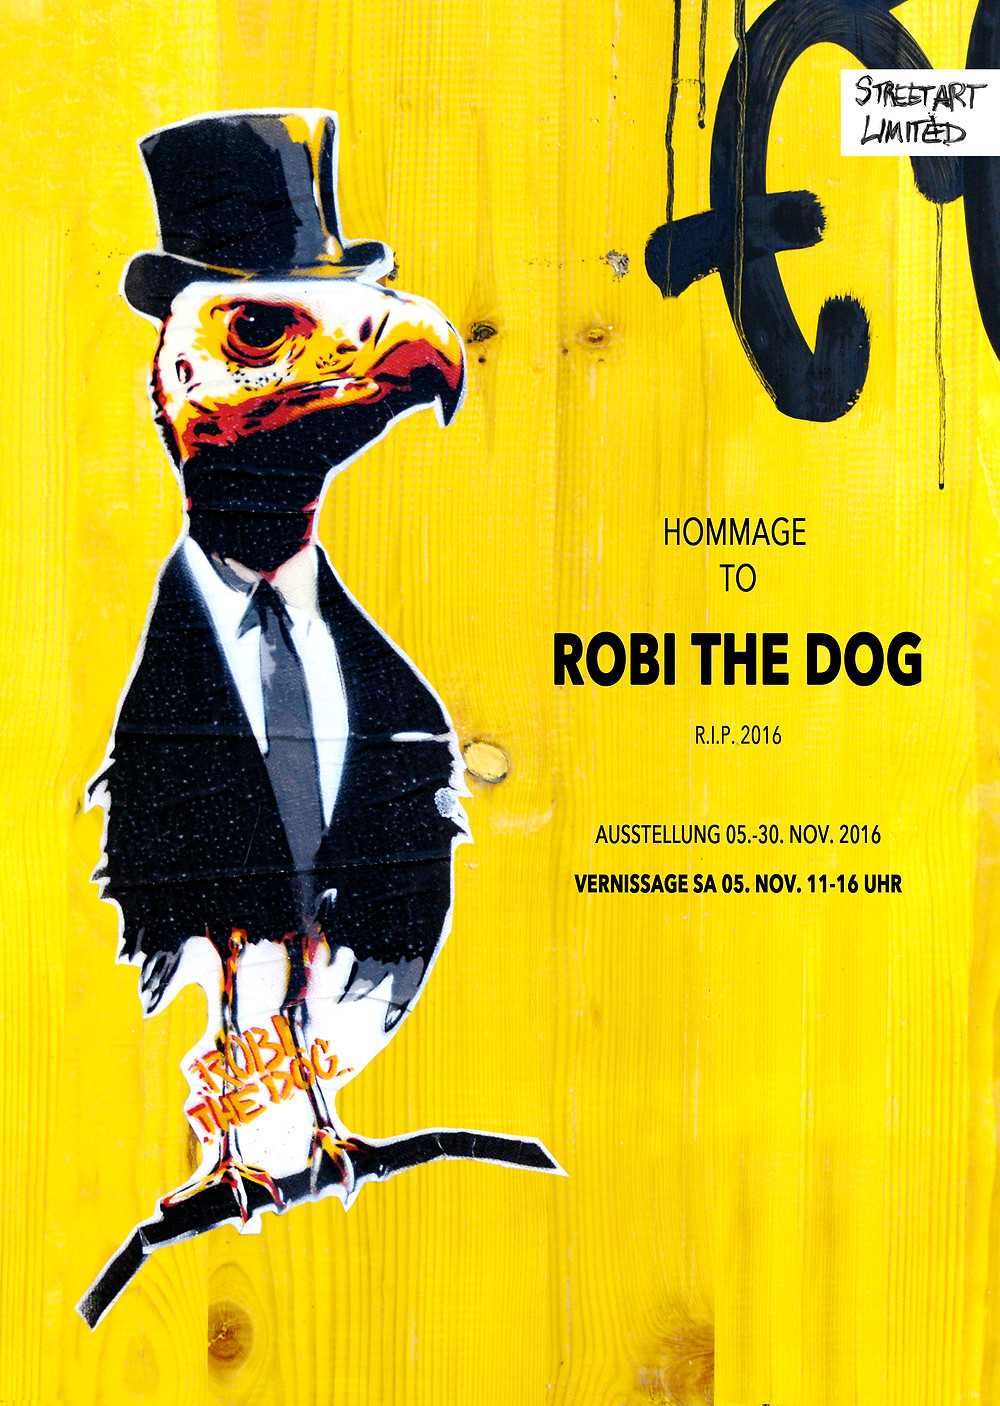 Hommage to Robi the dog at Streetart.Limited